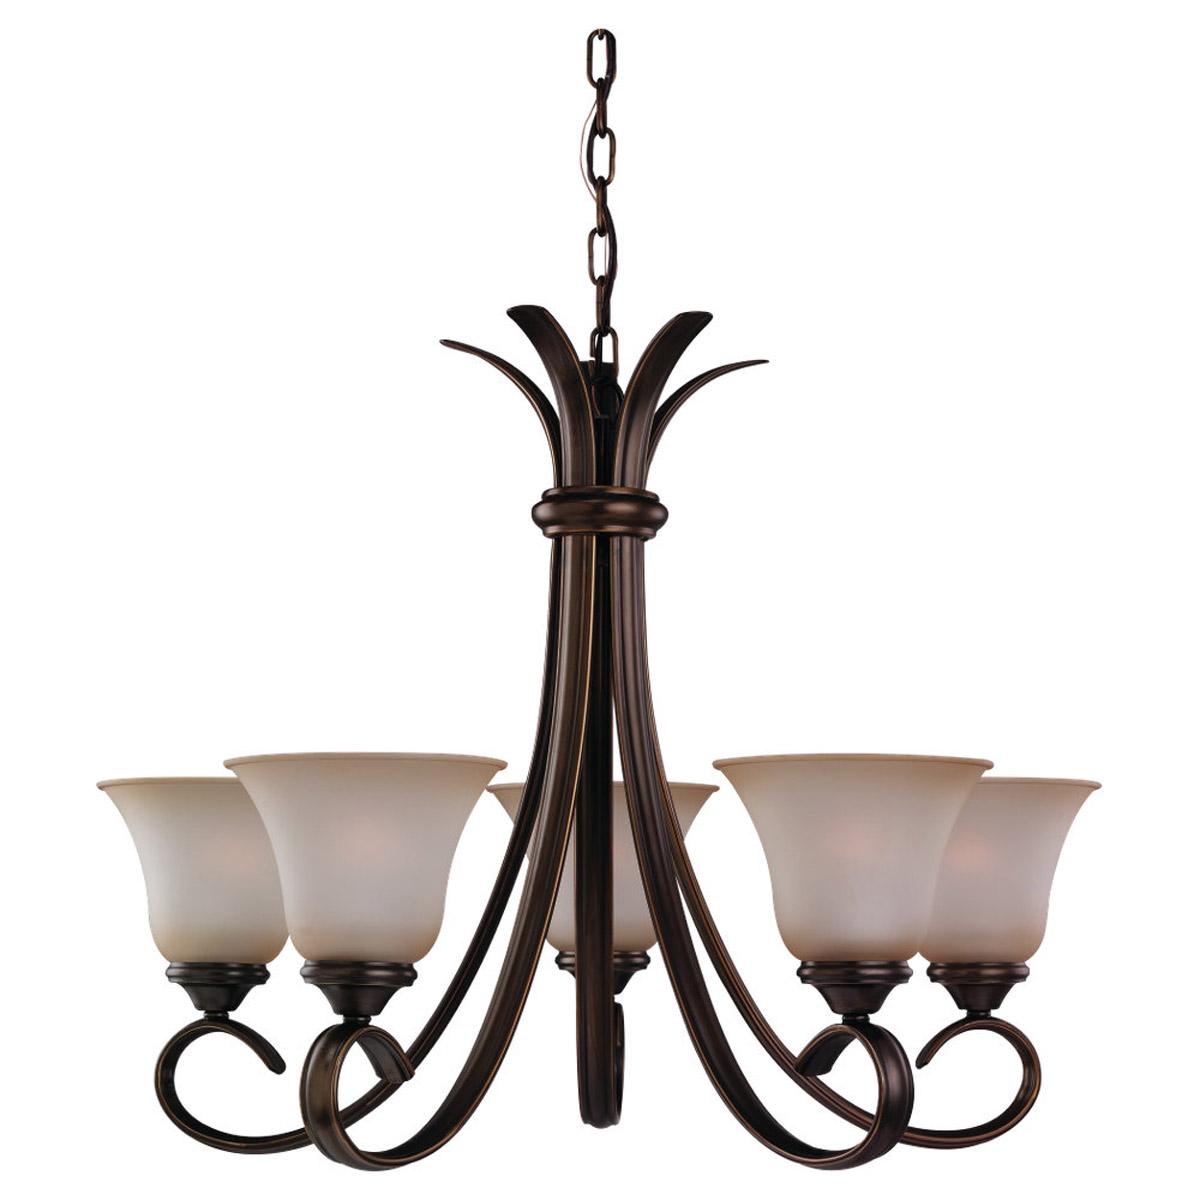 Sea Gull Lighting Rialto 5 Light Chandelier in Russet Bronze 31361-829 photo